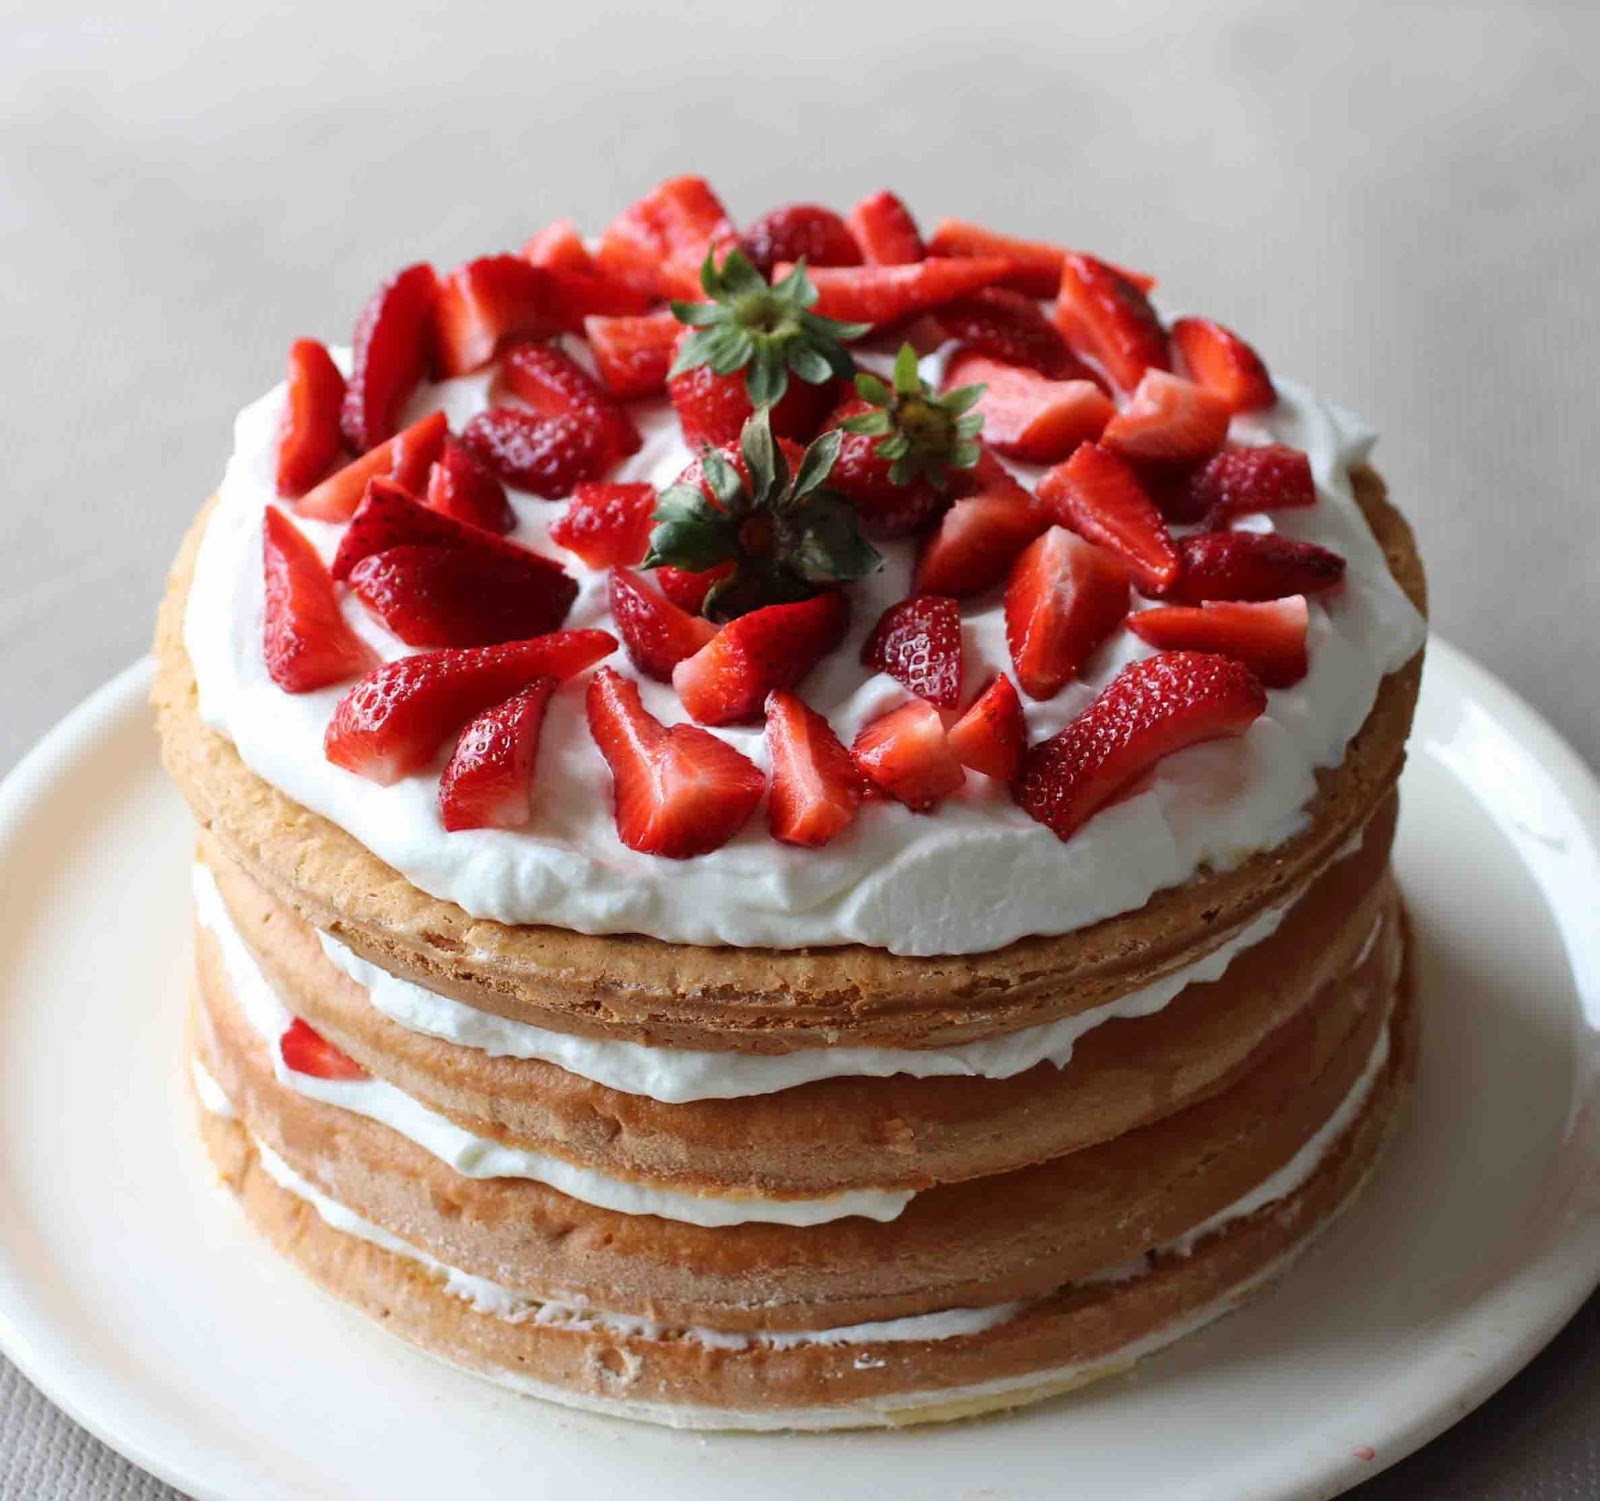 http://camilleenchocolat.blogspot.fr/2014/06/layer-cake-la-fraise.html